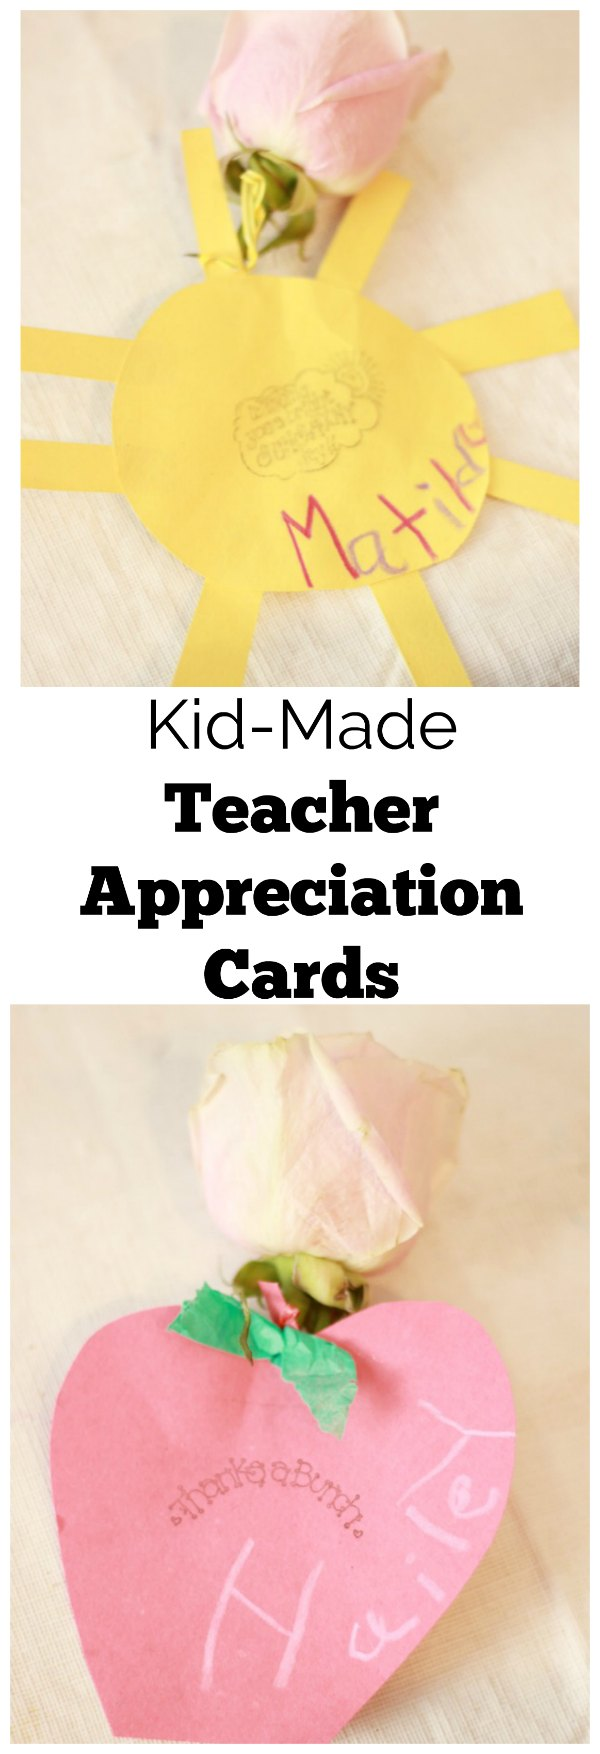 Kid-made teacher appreciation cards help kids show their teaccher's how thankful they are for all they do for our kids.